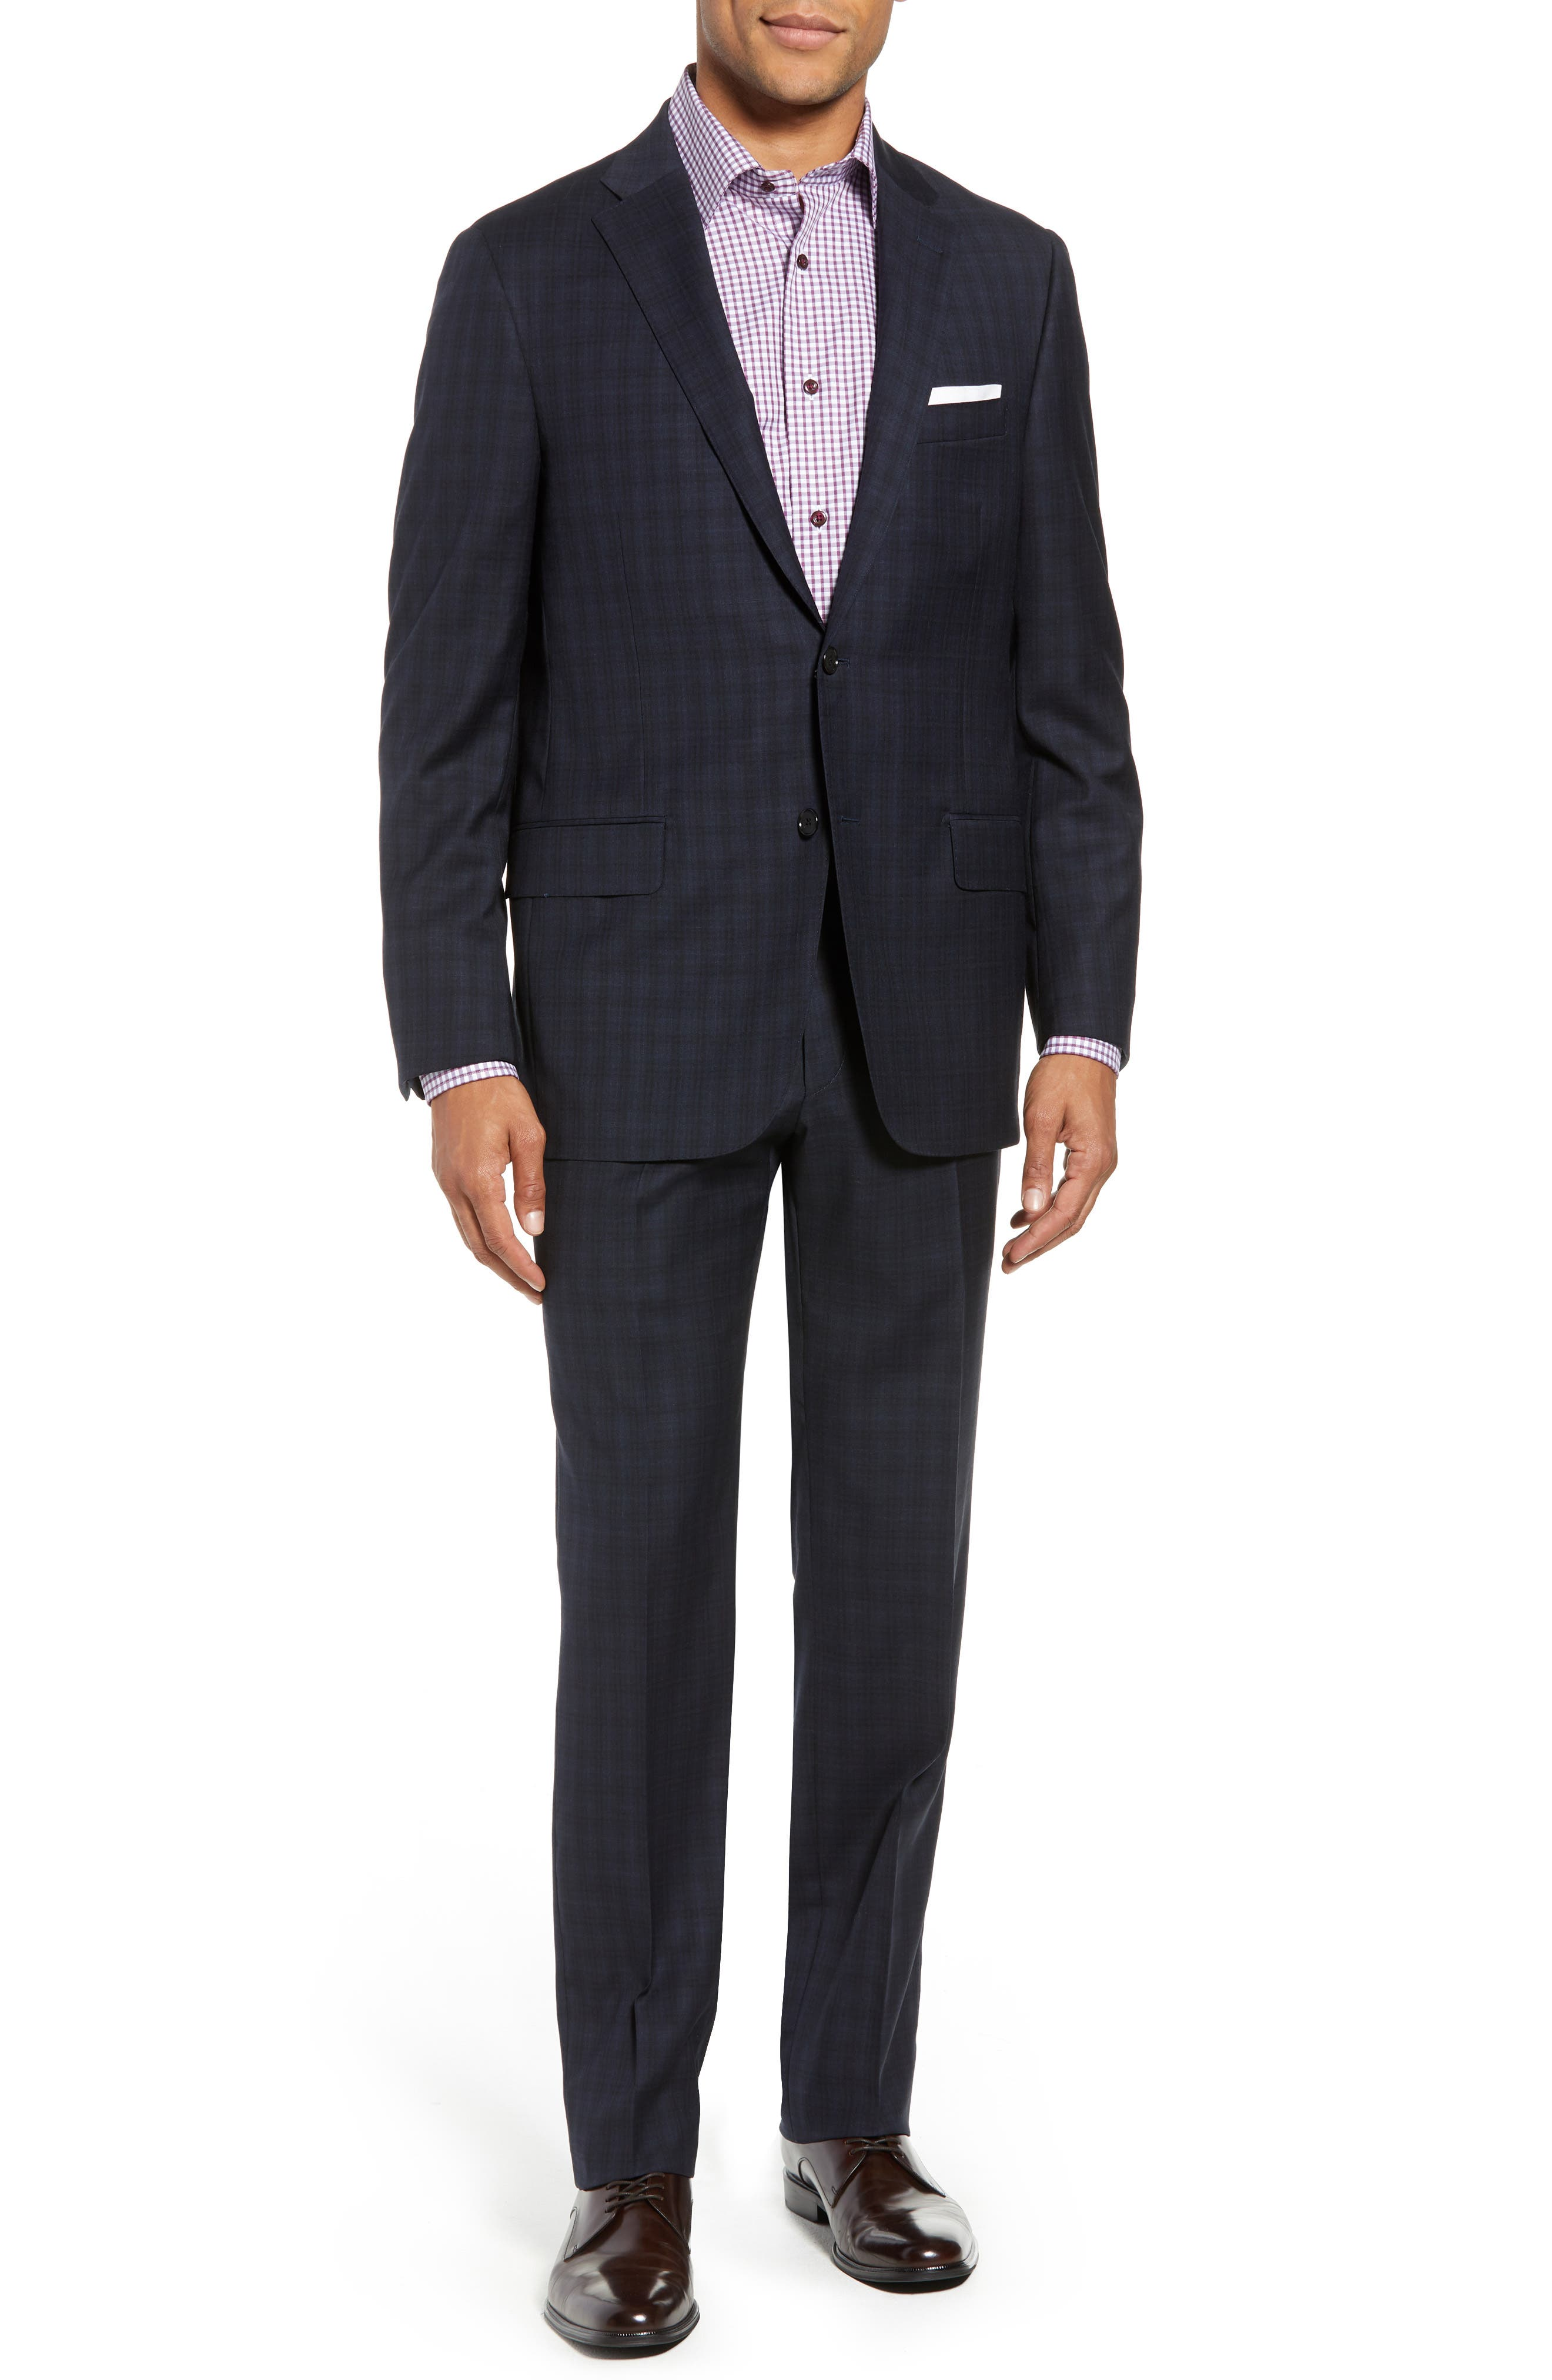 HICKEY FREEMAN CLASSIC FIT CHECK WOOL SUIT